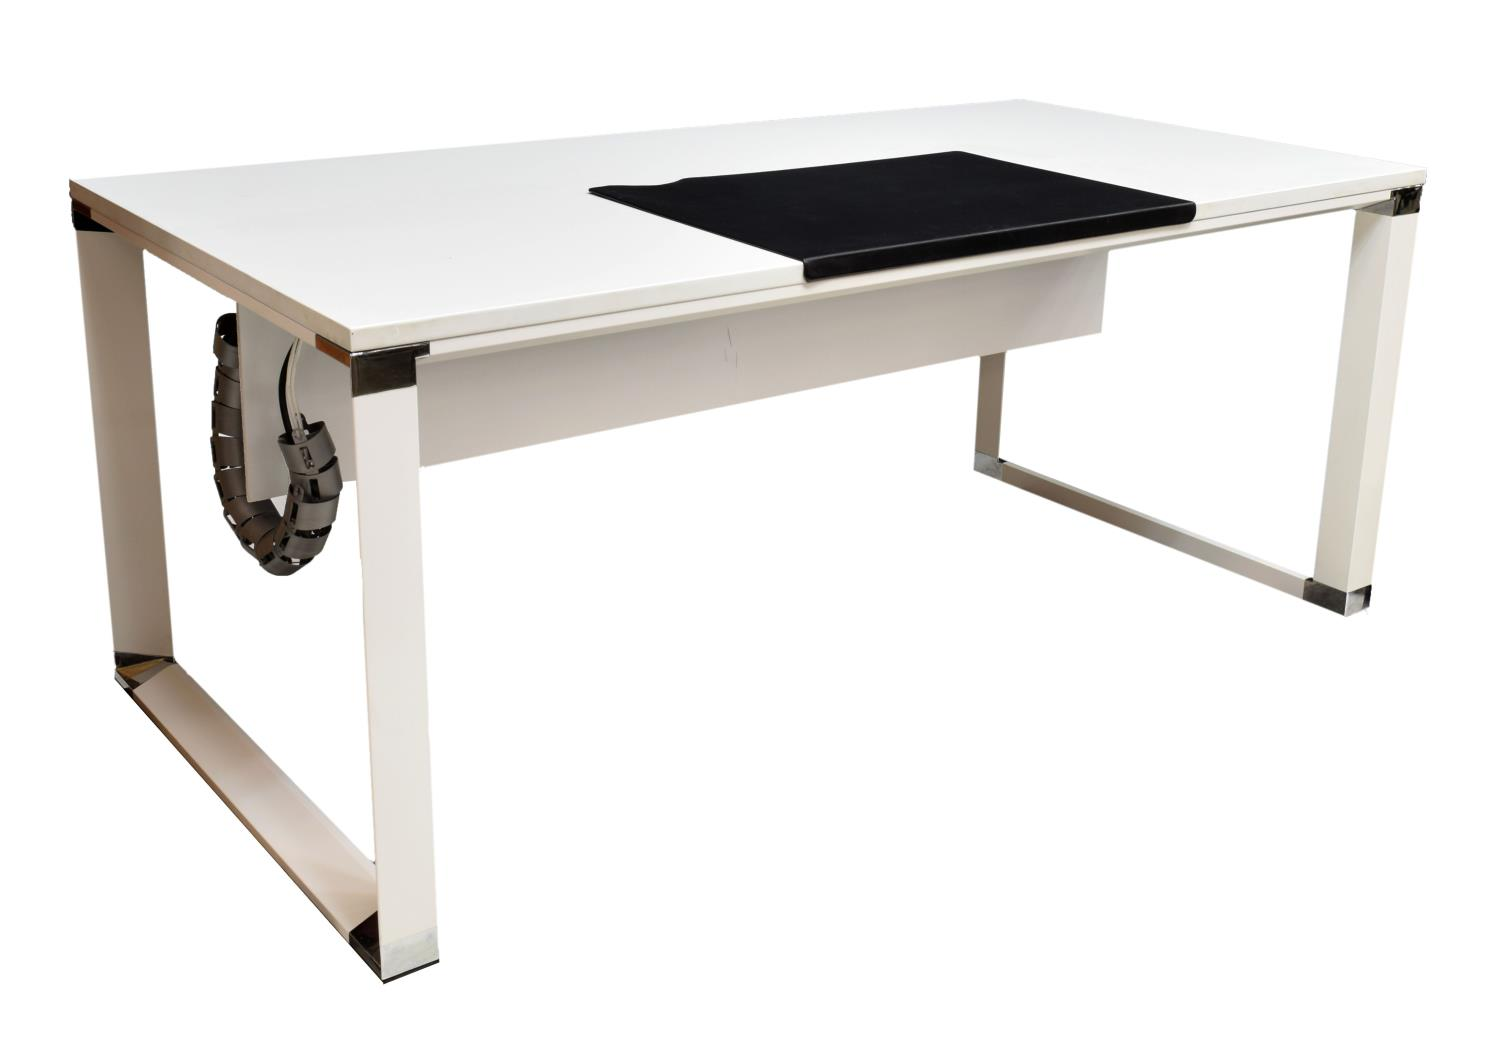 Jesper office white lacquer finish executive desk august estates auction day one austin - Jesper office desk ...